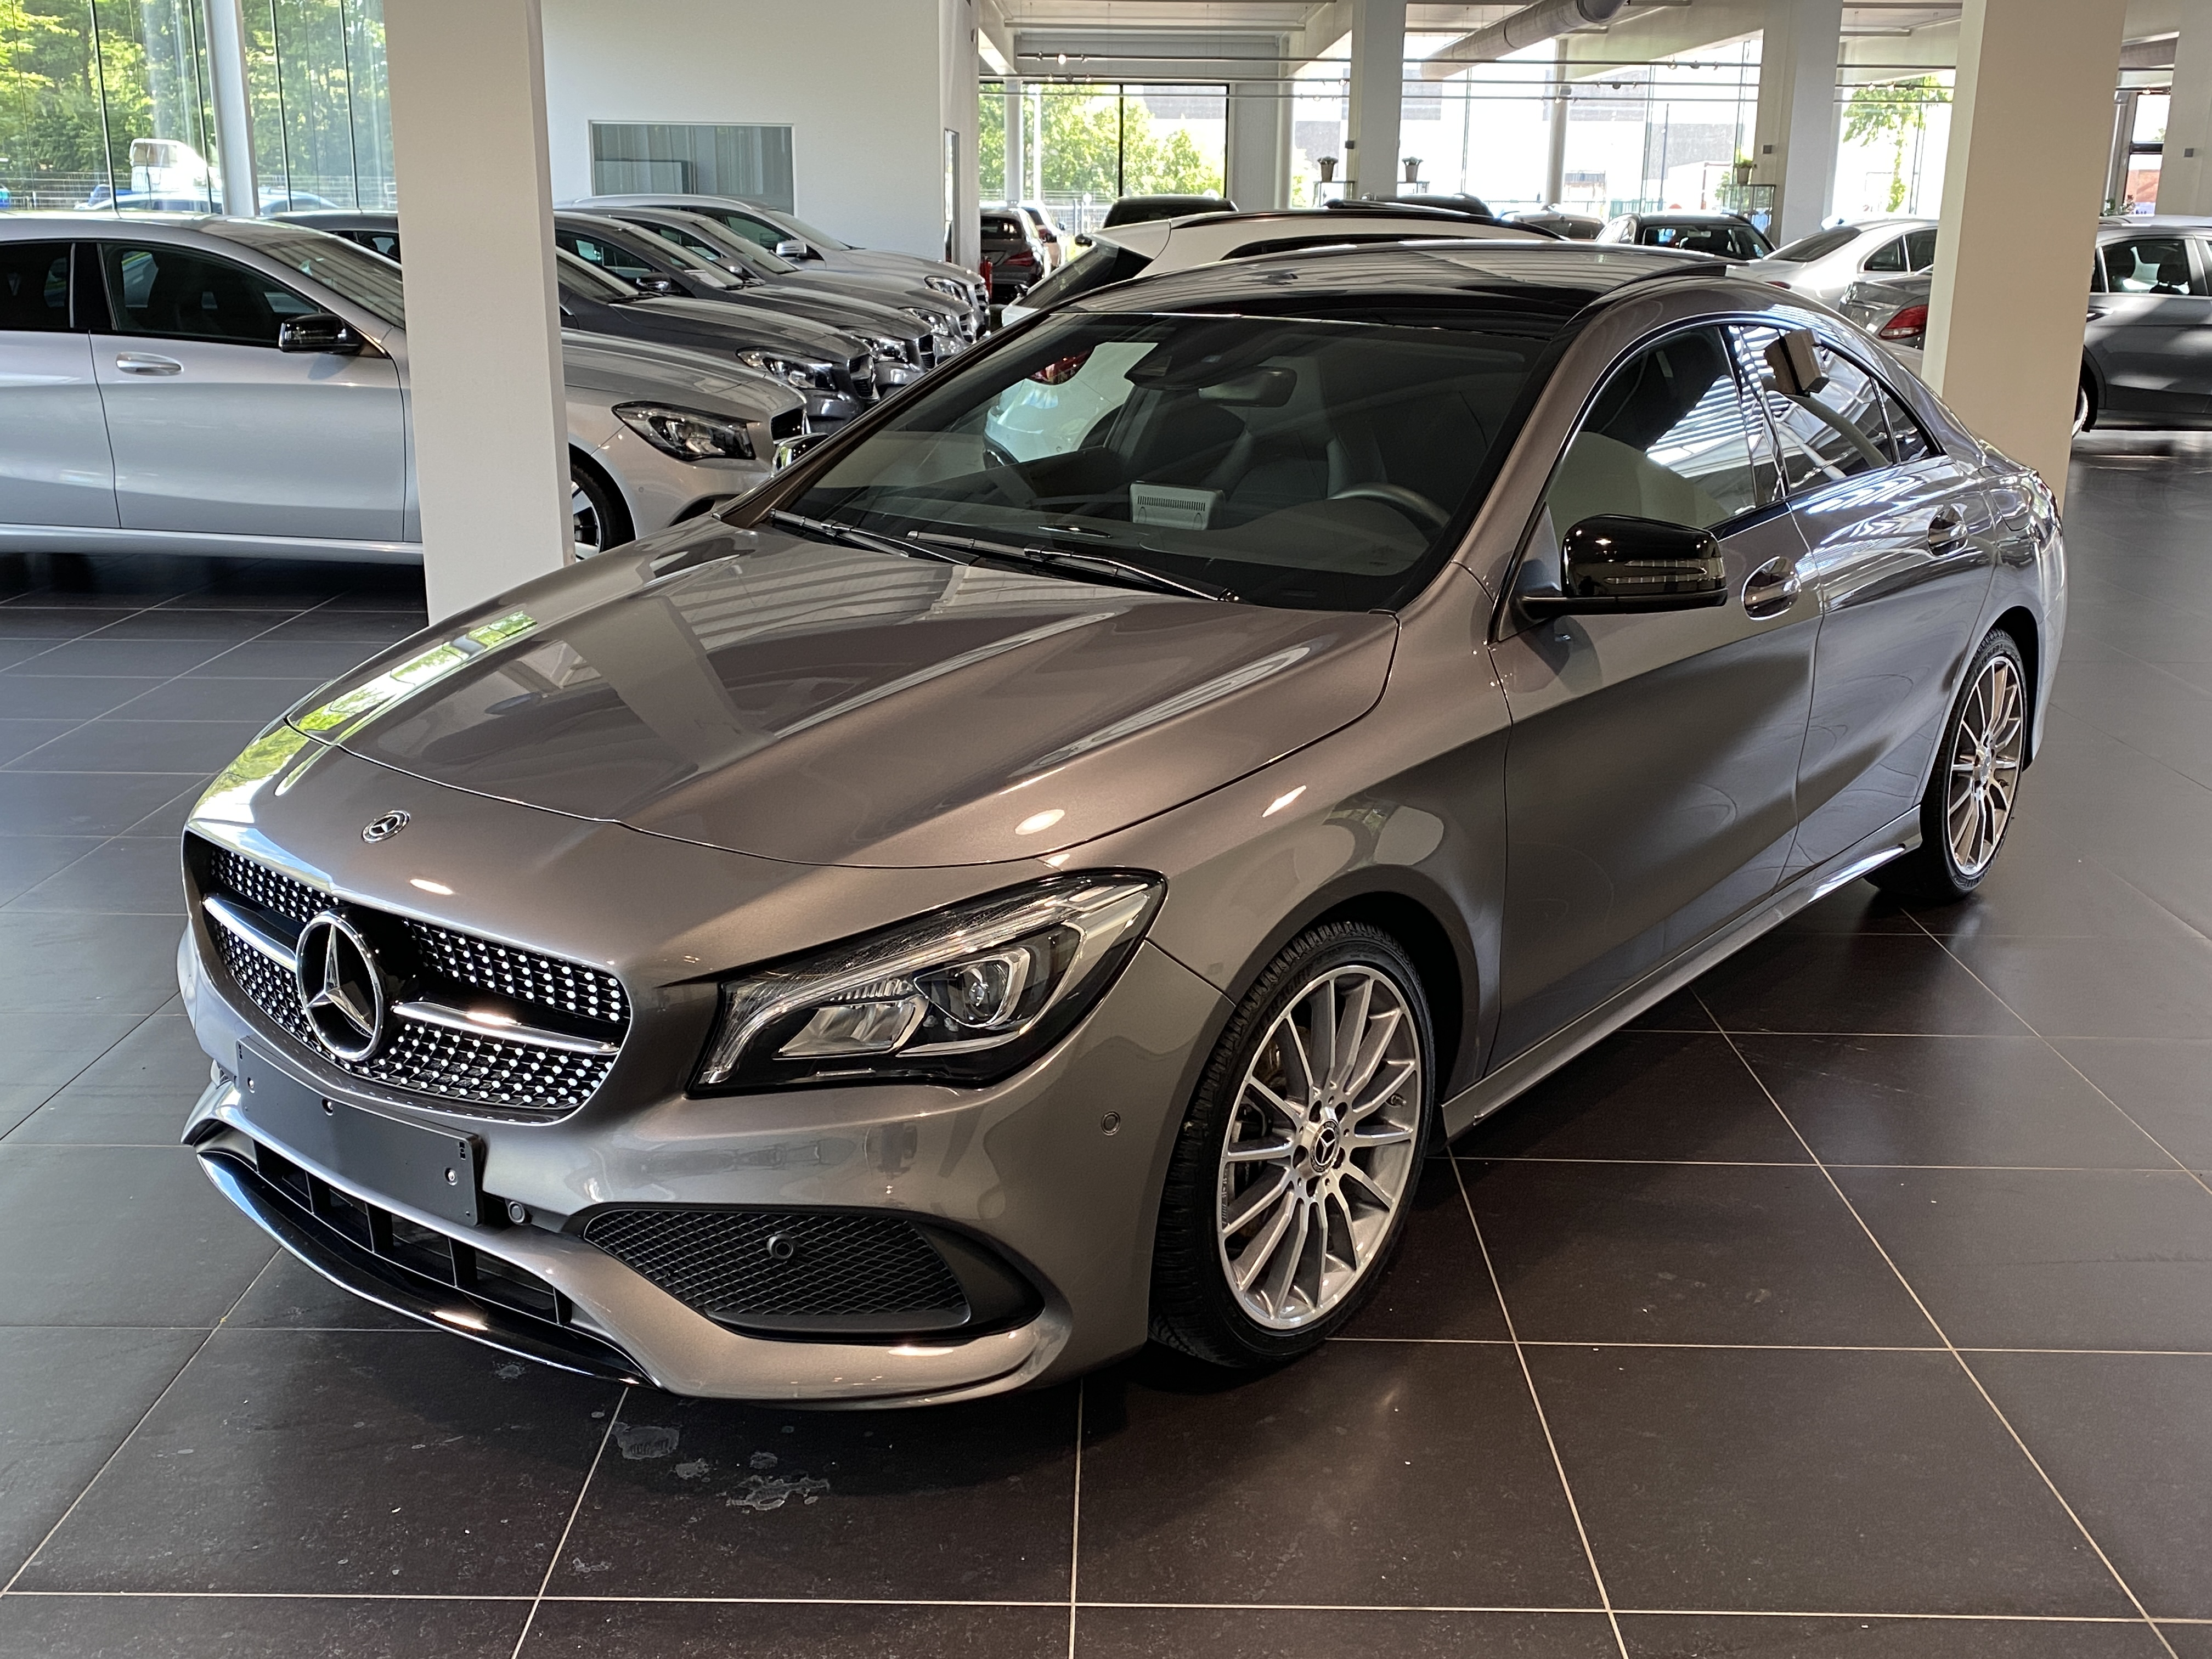 MERCEDES-BENZ CLA 180 Amg Panorama, Night Pack, Achteruitrij Camera, Sfeerverlichting